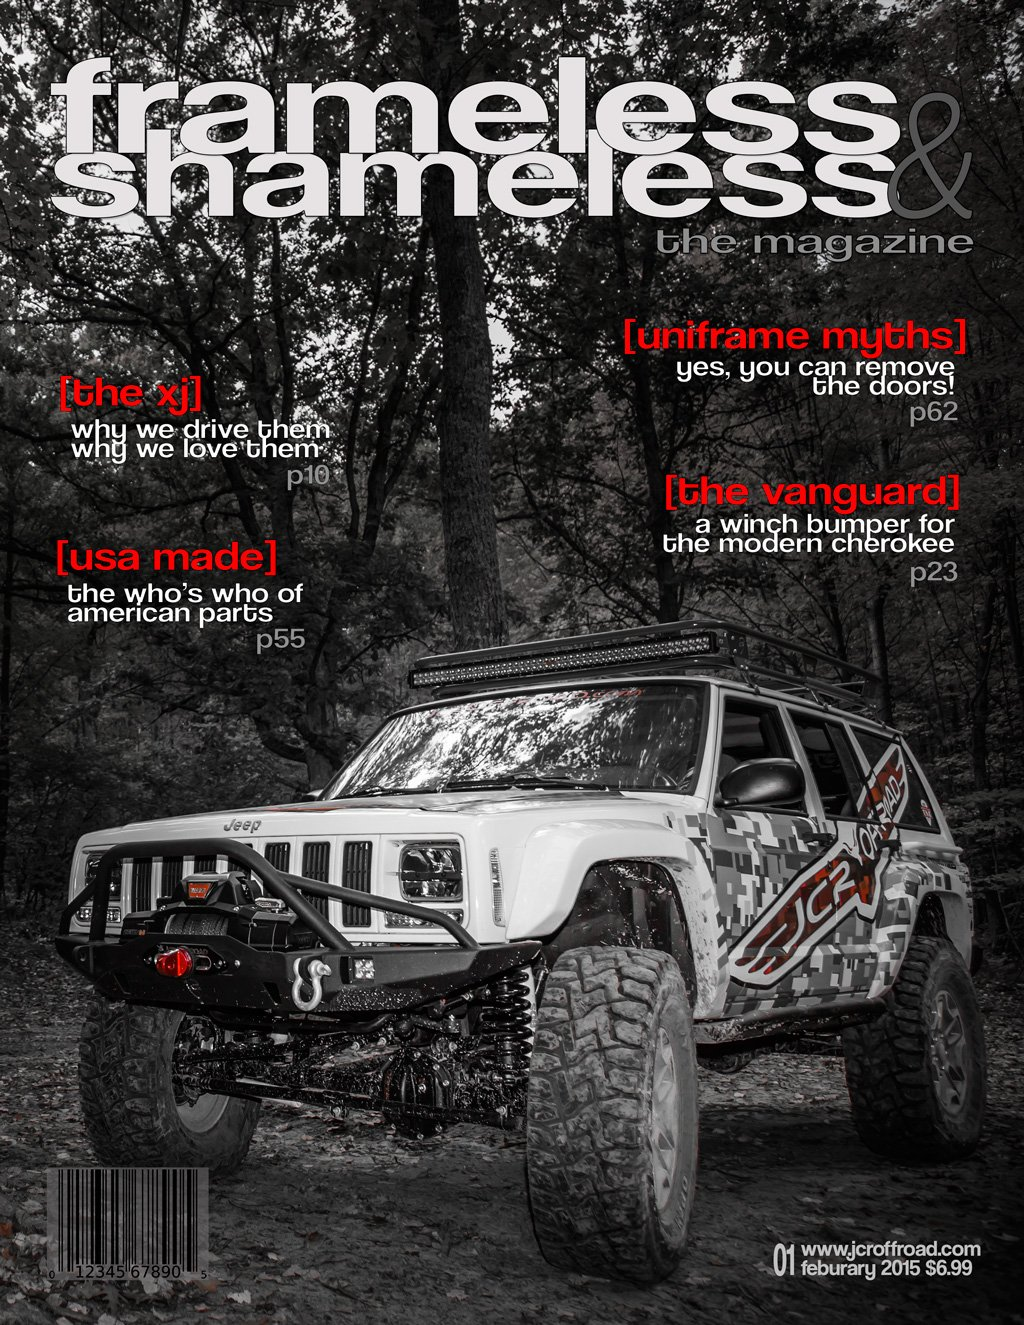 JcrOffroad's Real Hawk Posing for a Mock Magazine Cover. Frameless and Shameless